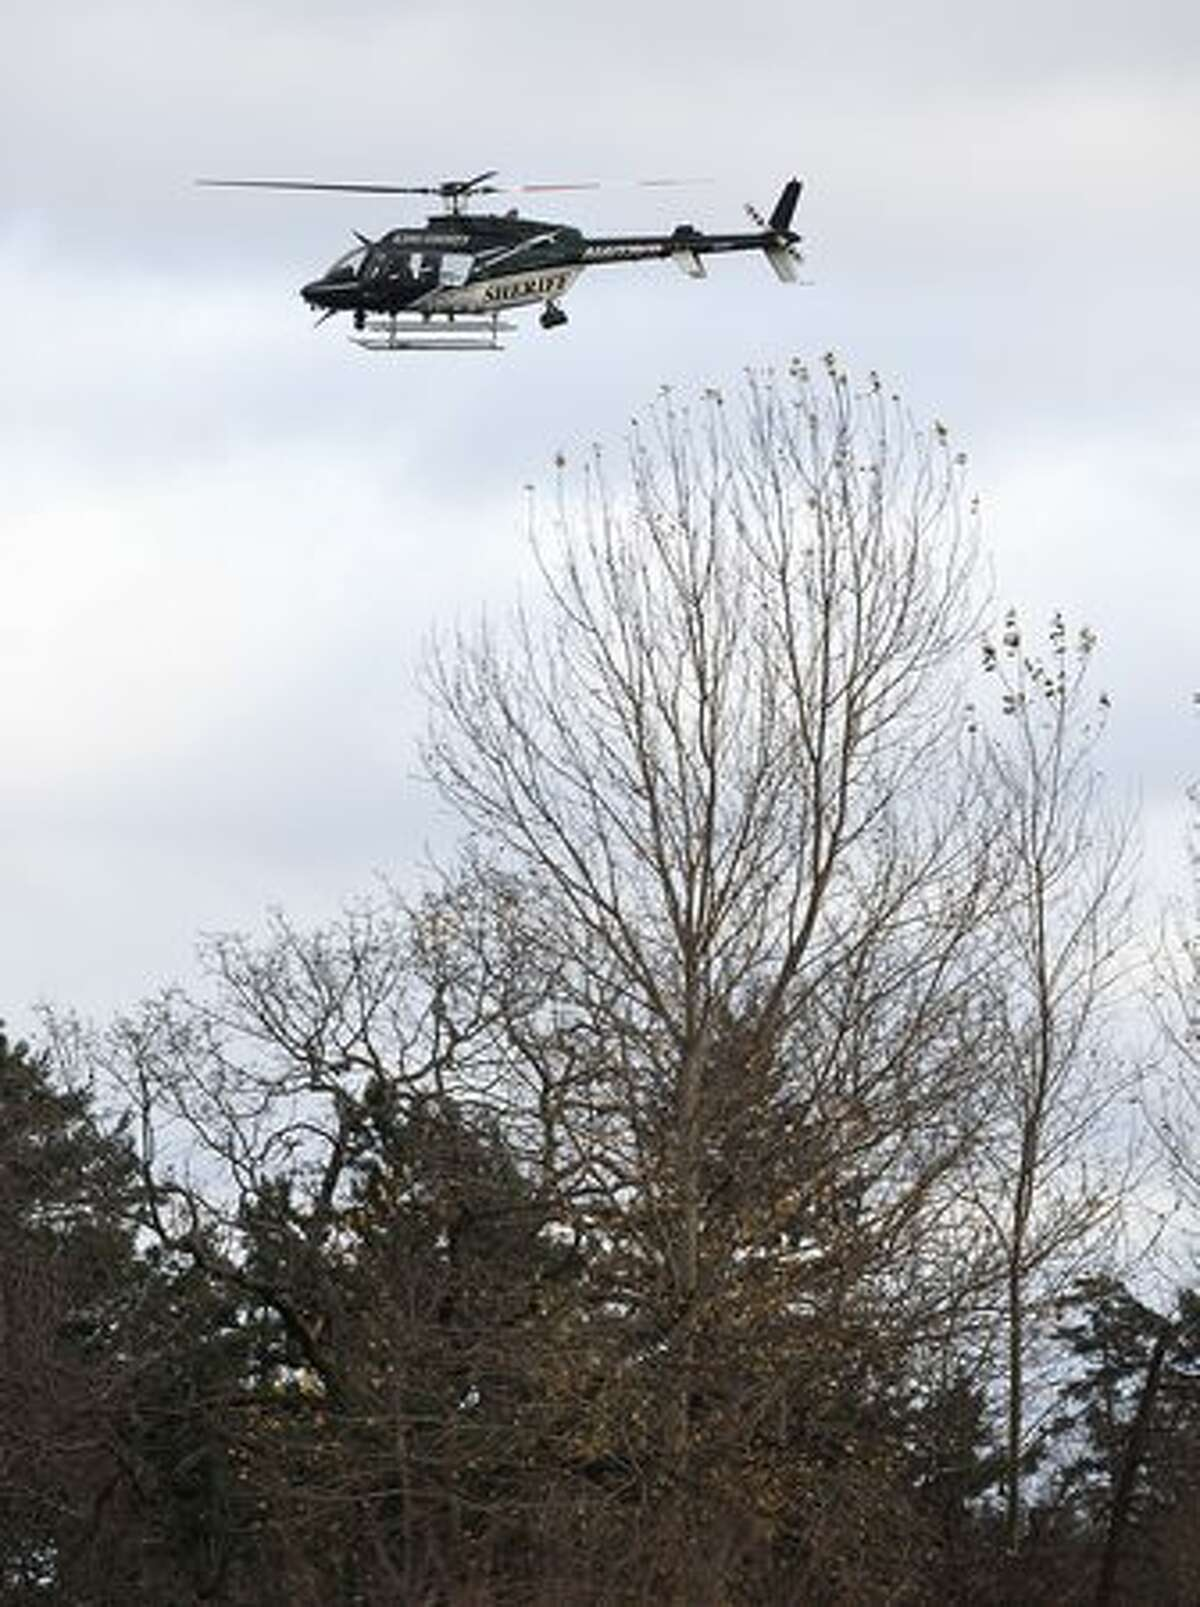 A Pierce County Sheriff helicopter hovers as law enforcement searches for a suspect Sunday near Lakewood. A gunman shot and killed four Lakewood Police Officers in a Forza Coffee Company shop Sunday morning in what authorities are describing as a targeted attack.